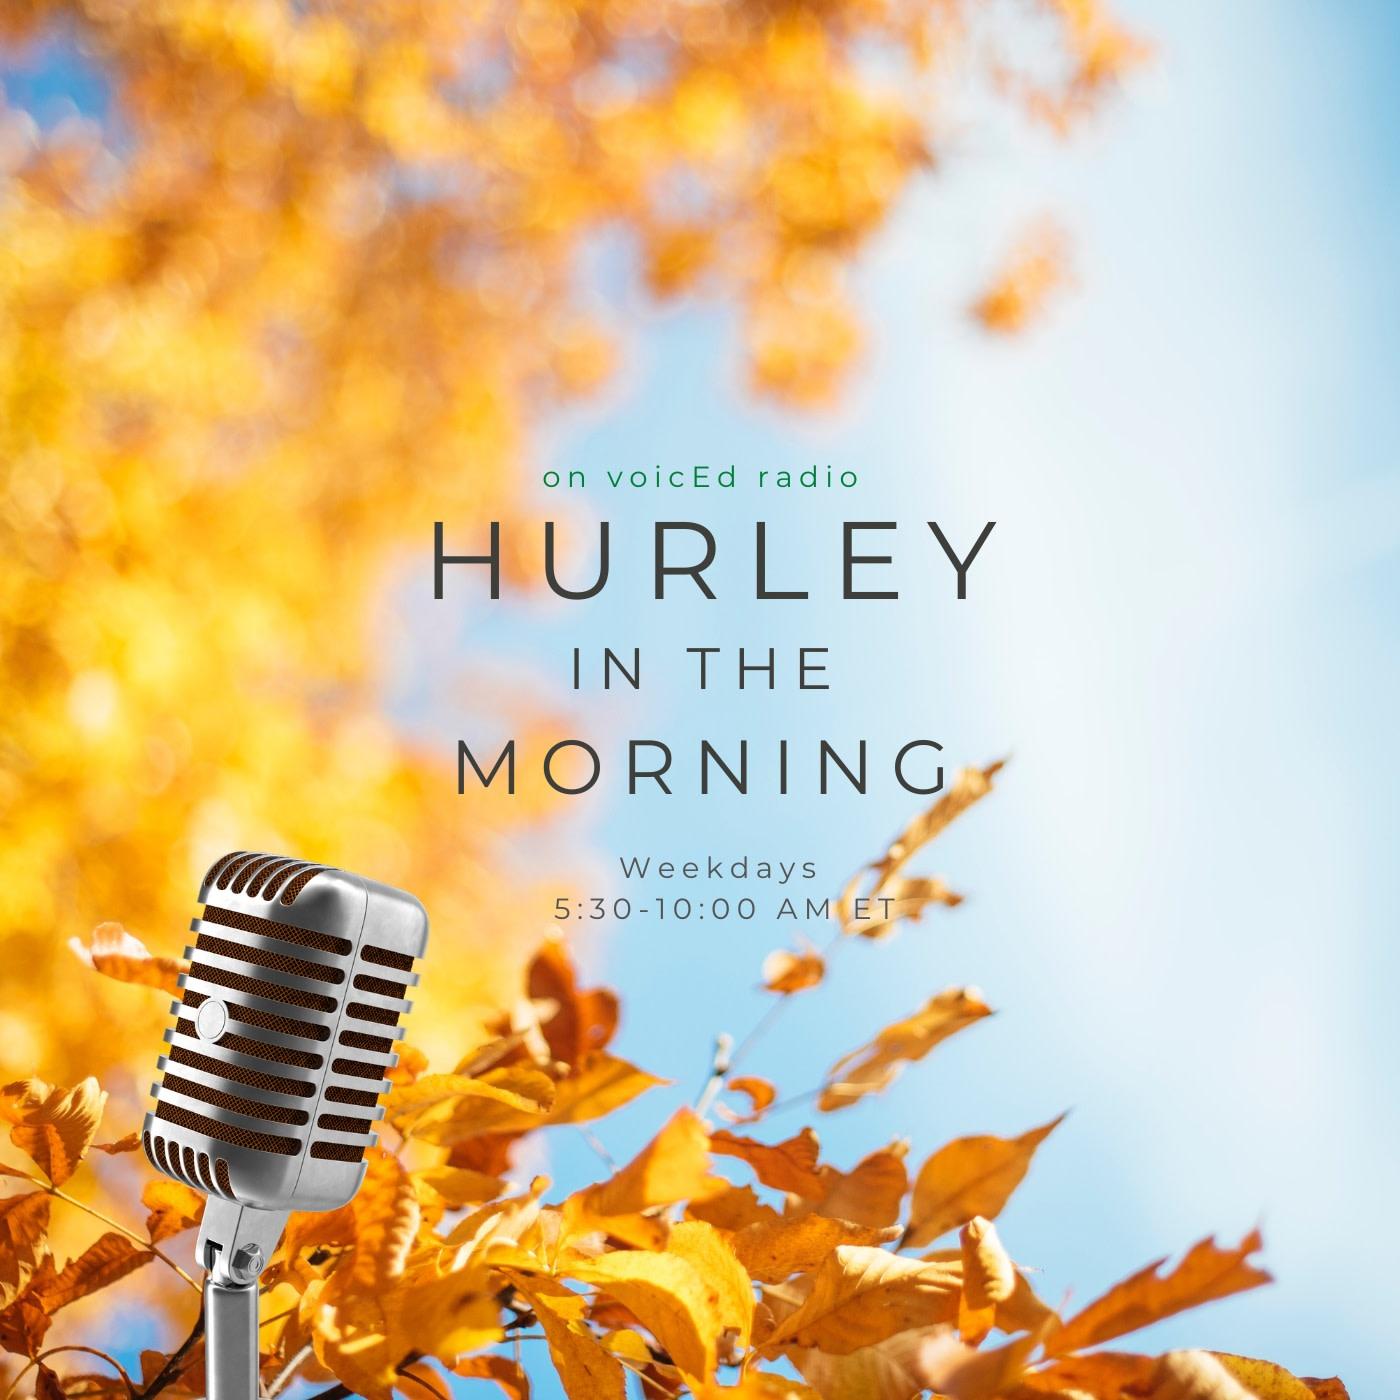 Hurley in the Morning on voicEd Radio